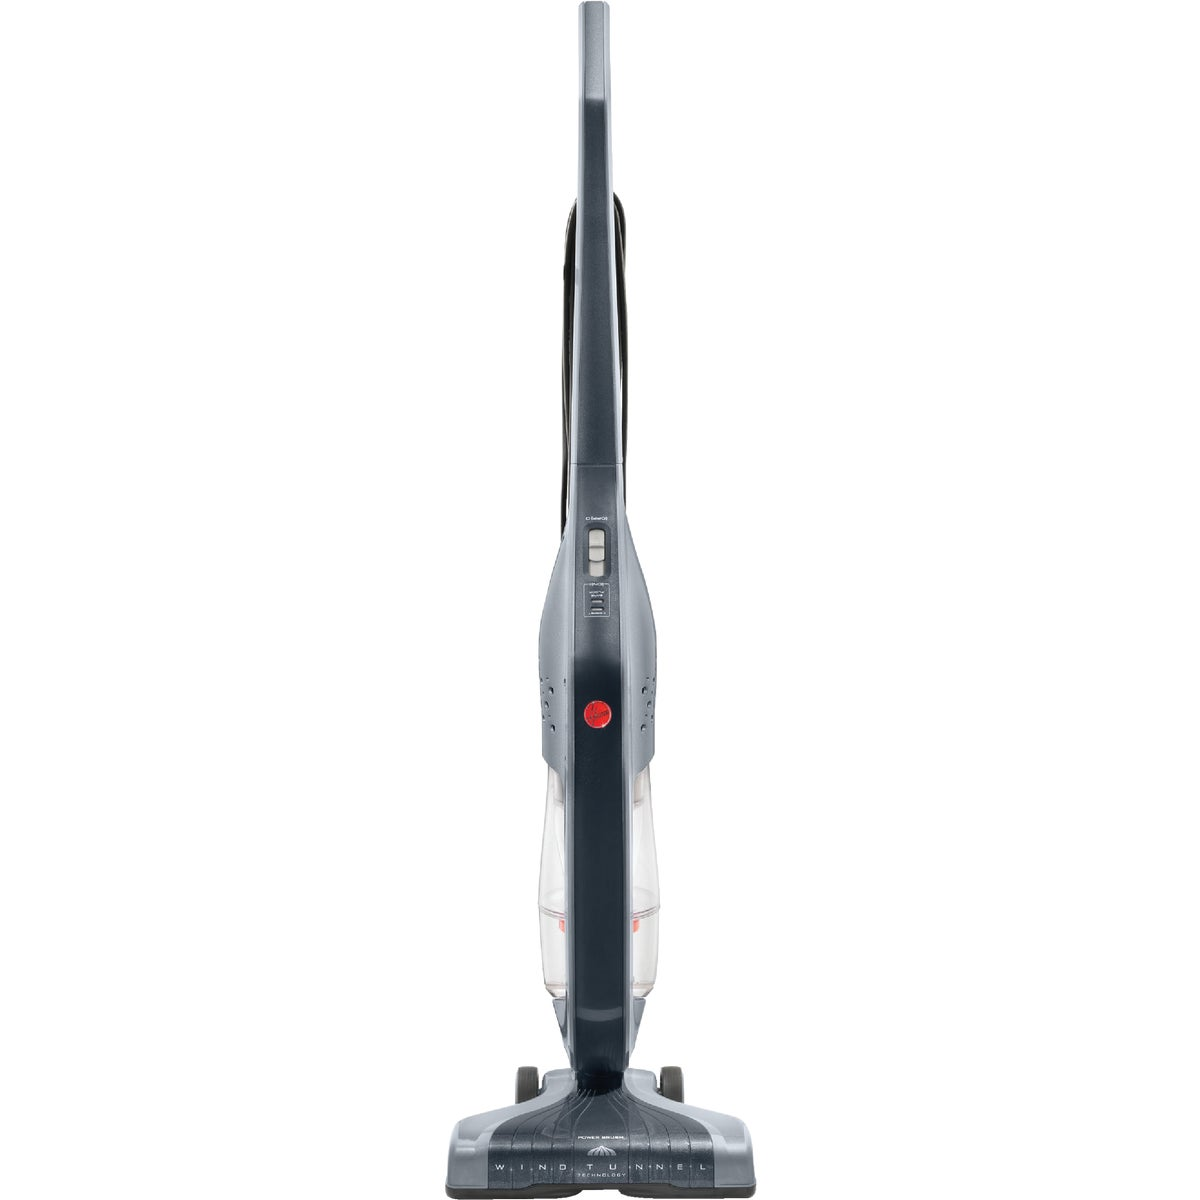 WINDTUNNEL STICK VACUUM - SH20030 by Hoover Co